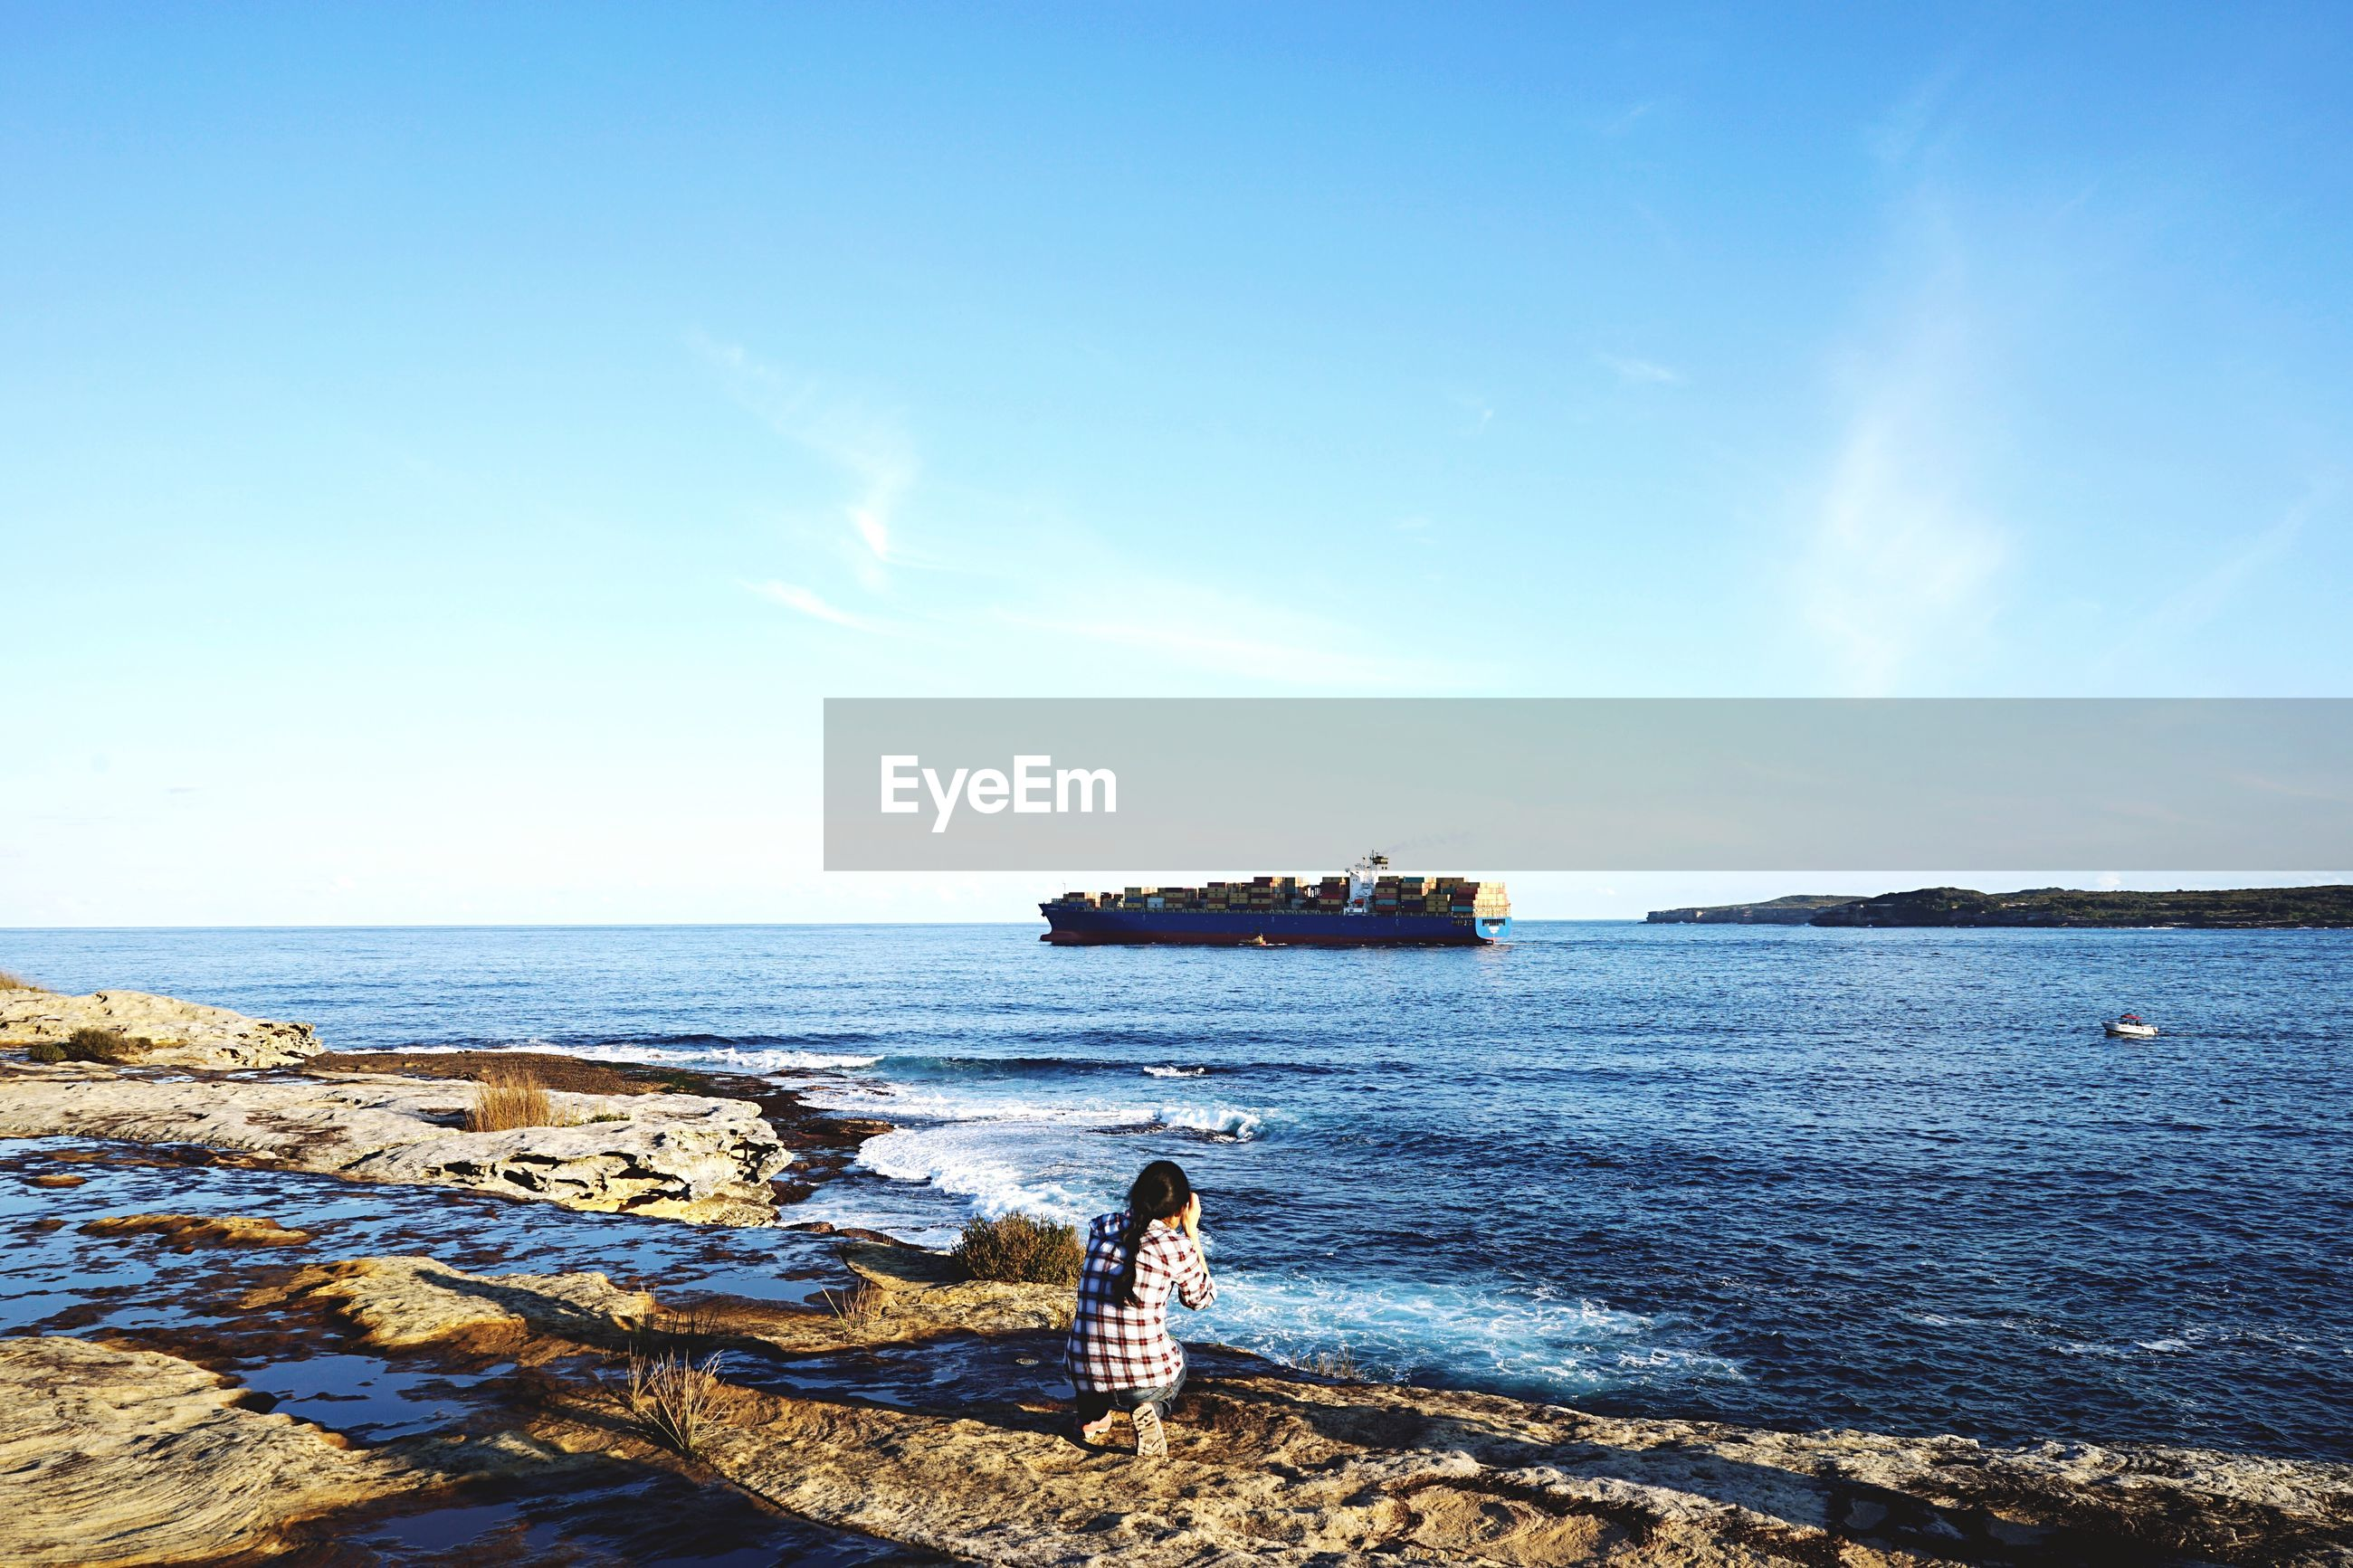 sea, water, horizon over water, beach, tranquility, sky, tranquil scene, blue, nautical vessel, shore, scenics, transportation, beauty in nature, nature, mode of transport, boat, rock - object, sand, idyllic, sunlight